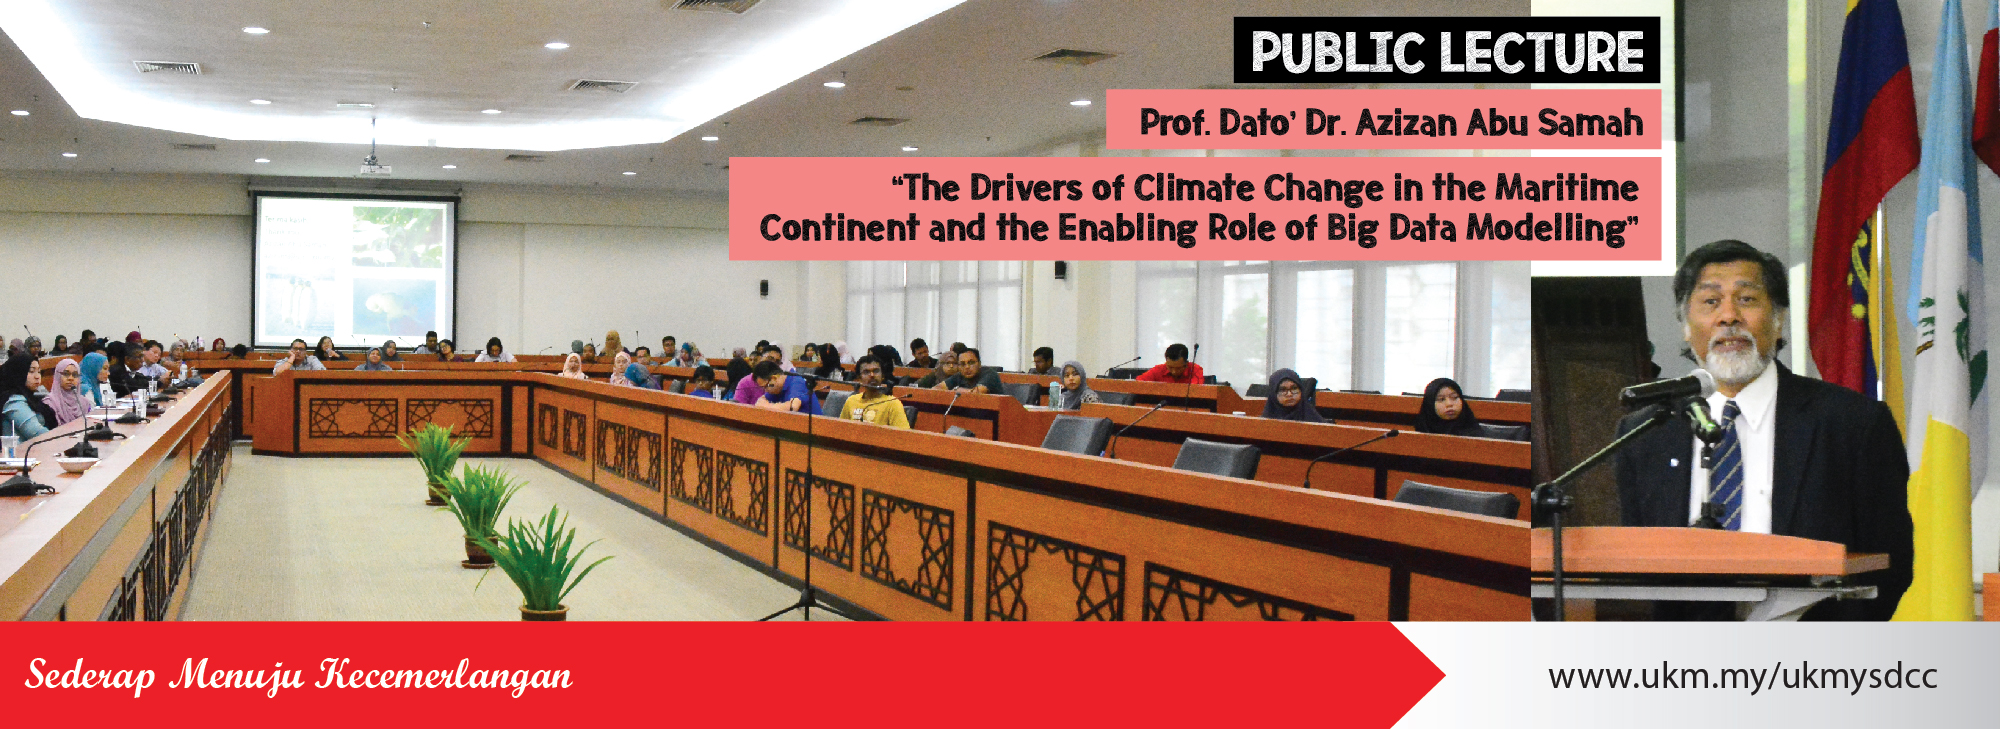 Public Lecture: The Drivers of Climate Change in the Maritime Continent and the Enabling Role of Big Data Modelling